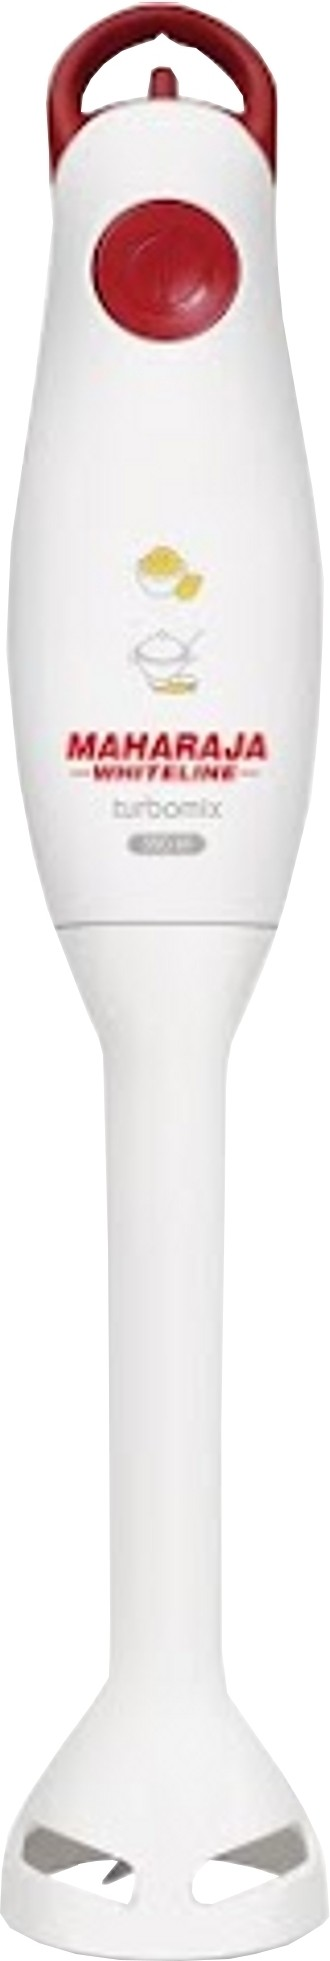 Flipkart - Hand Blender Just Rs. 500